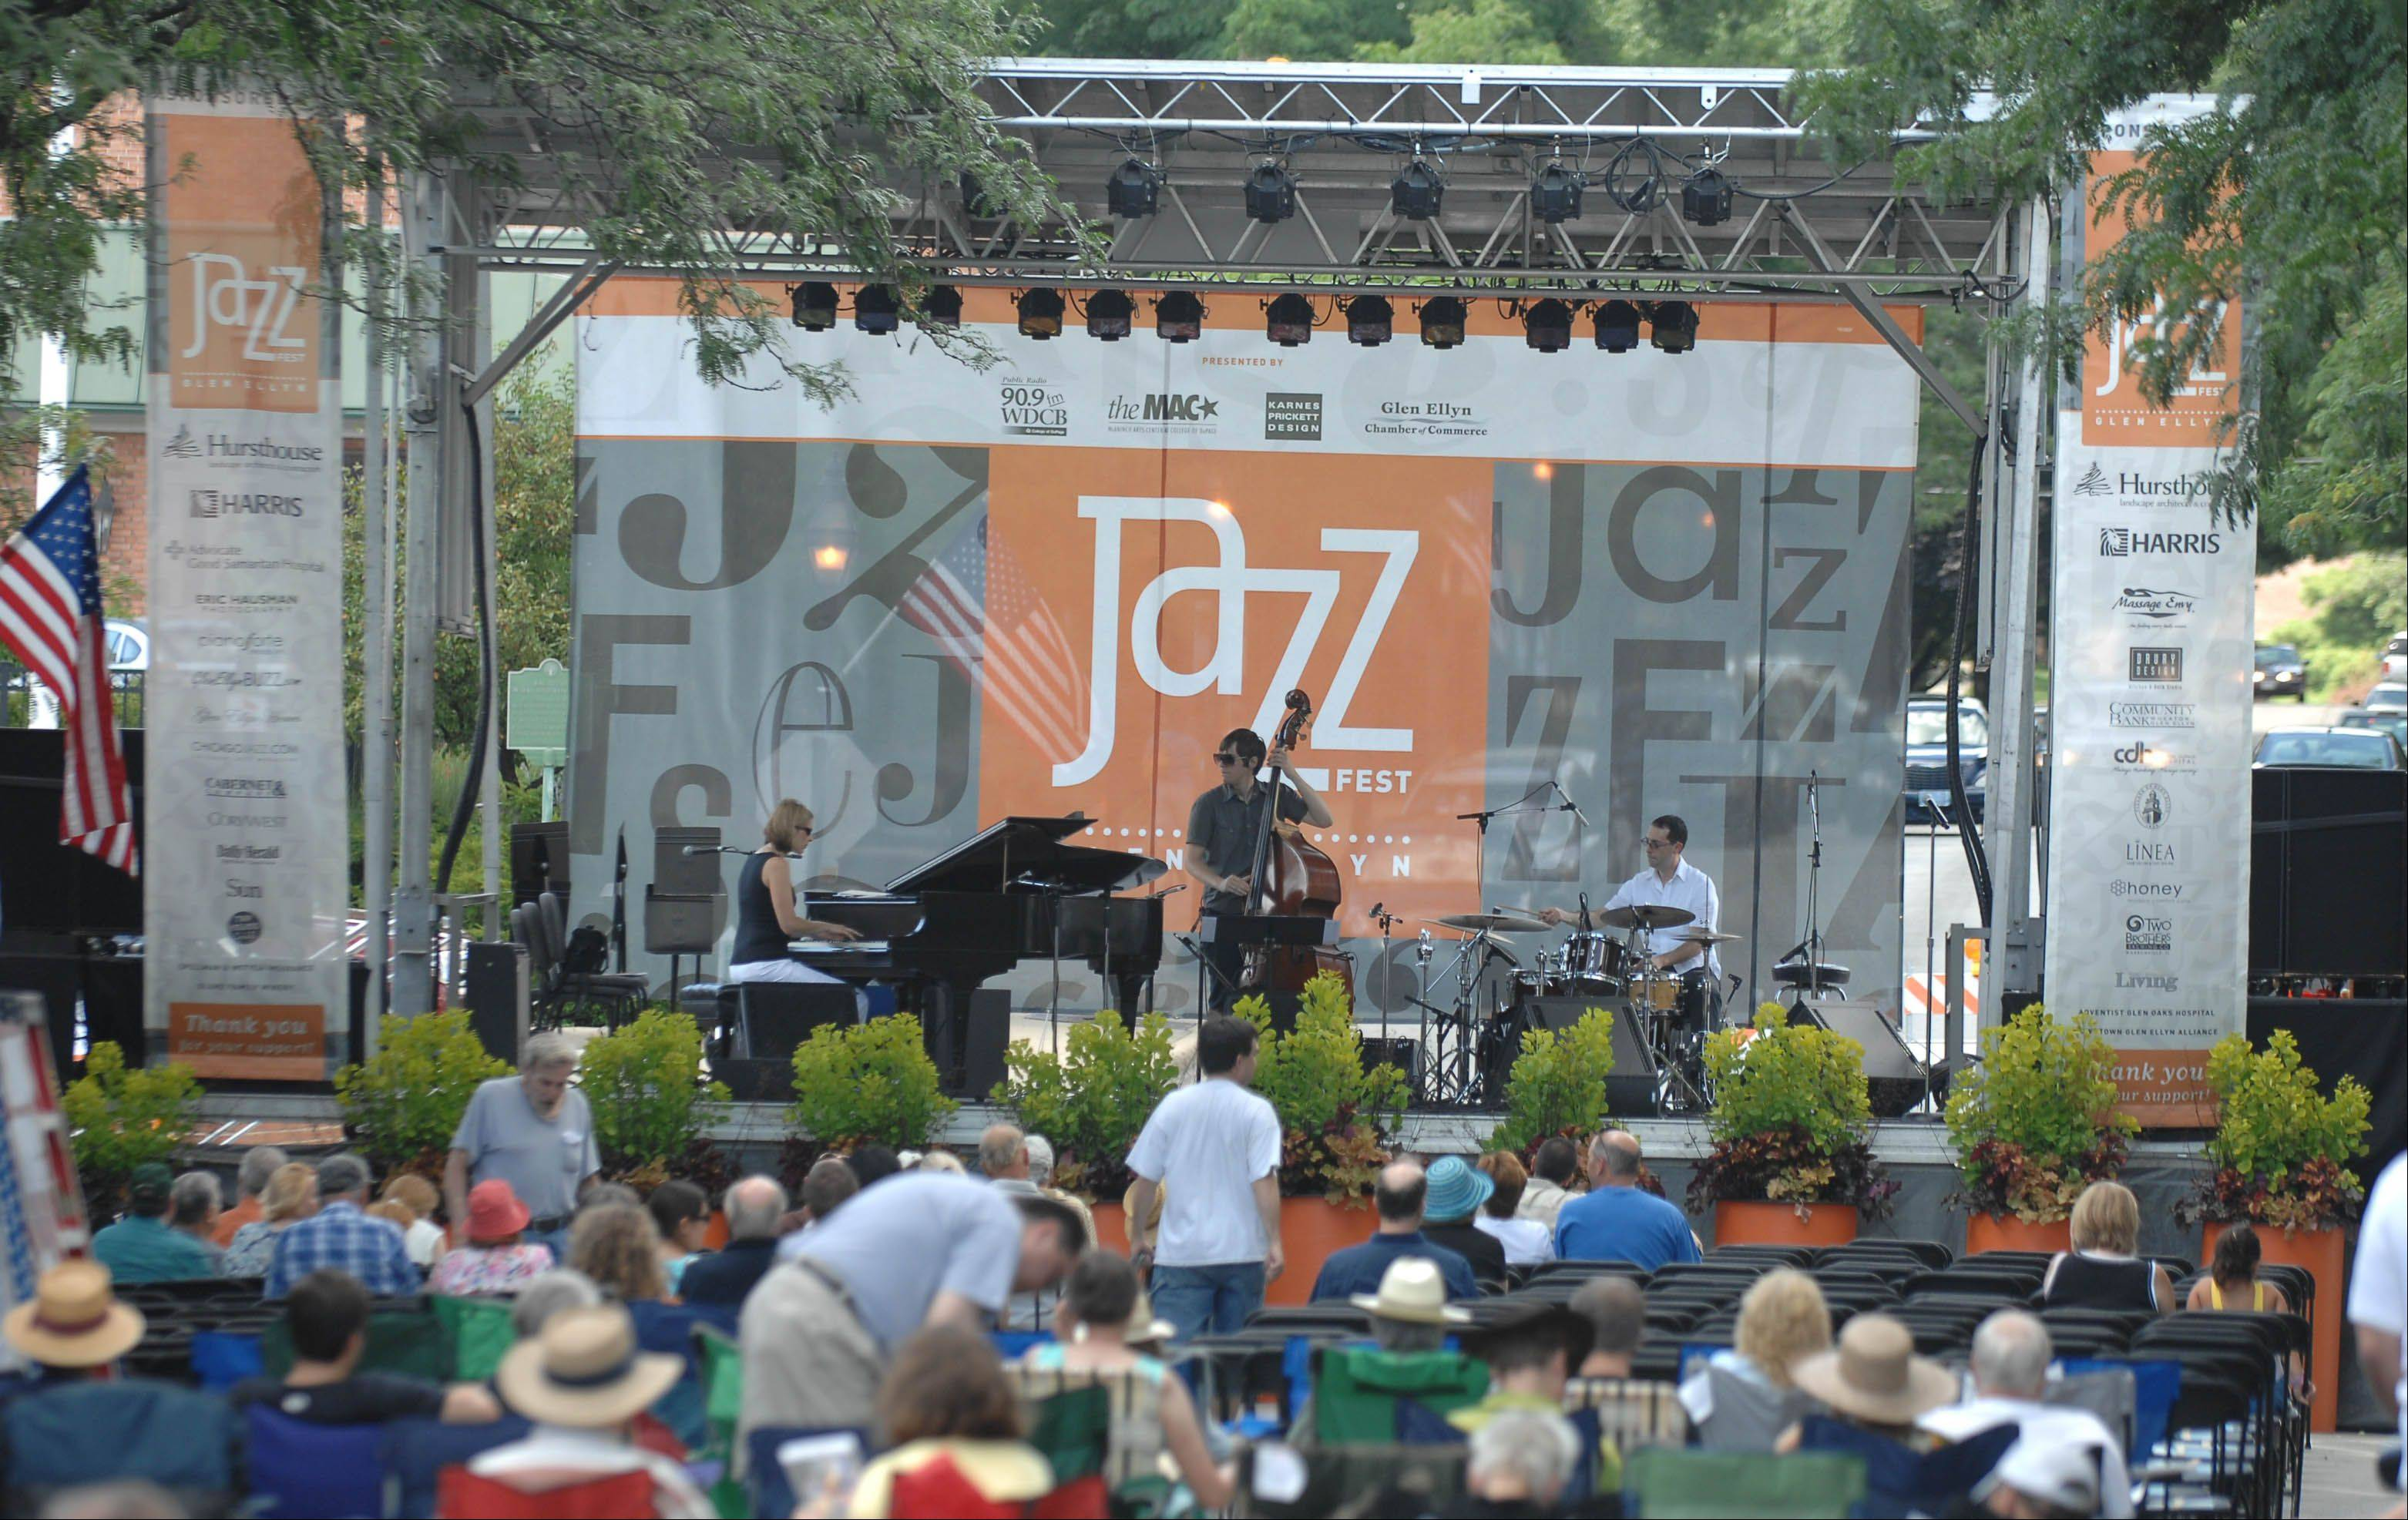 Glen Ellyn's fifth annual Jazz Fest runs from 3 to 10 p.m. today in the heart of downtown.